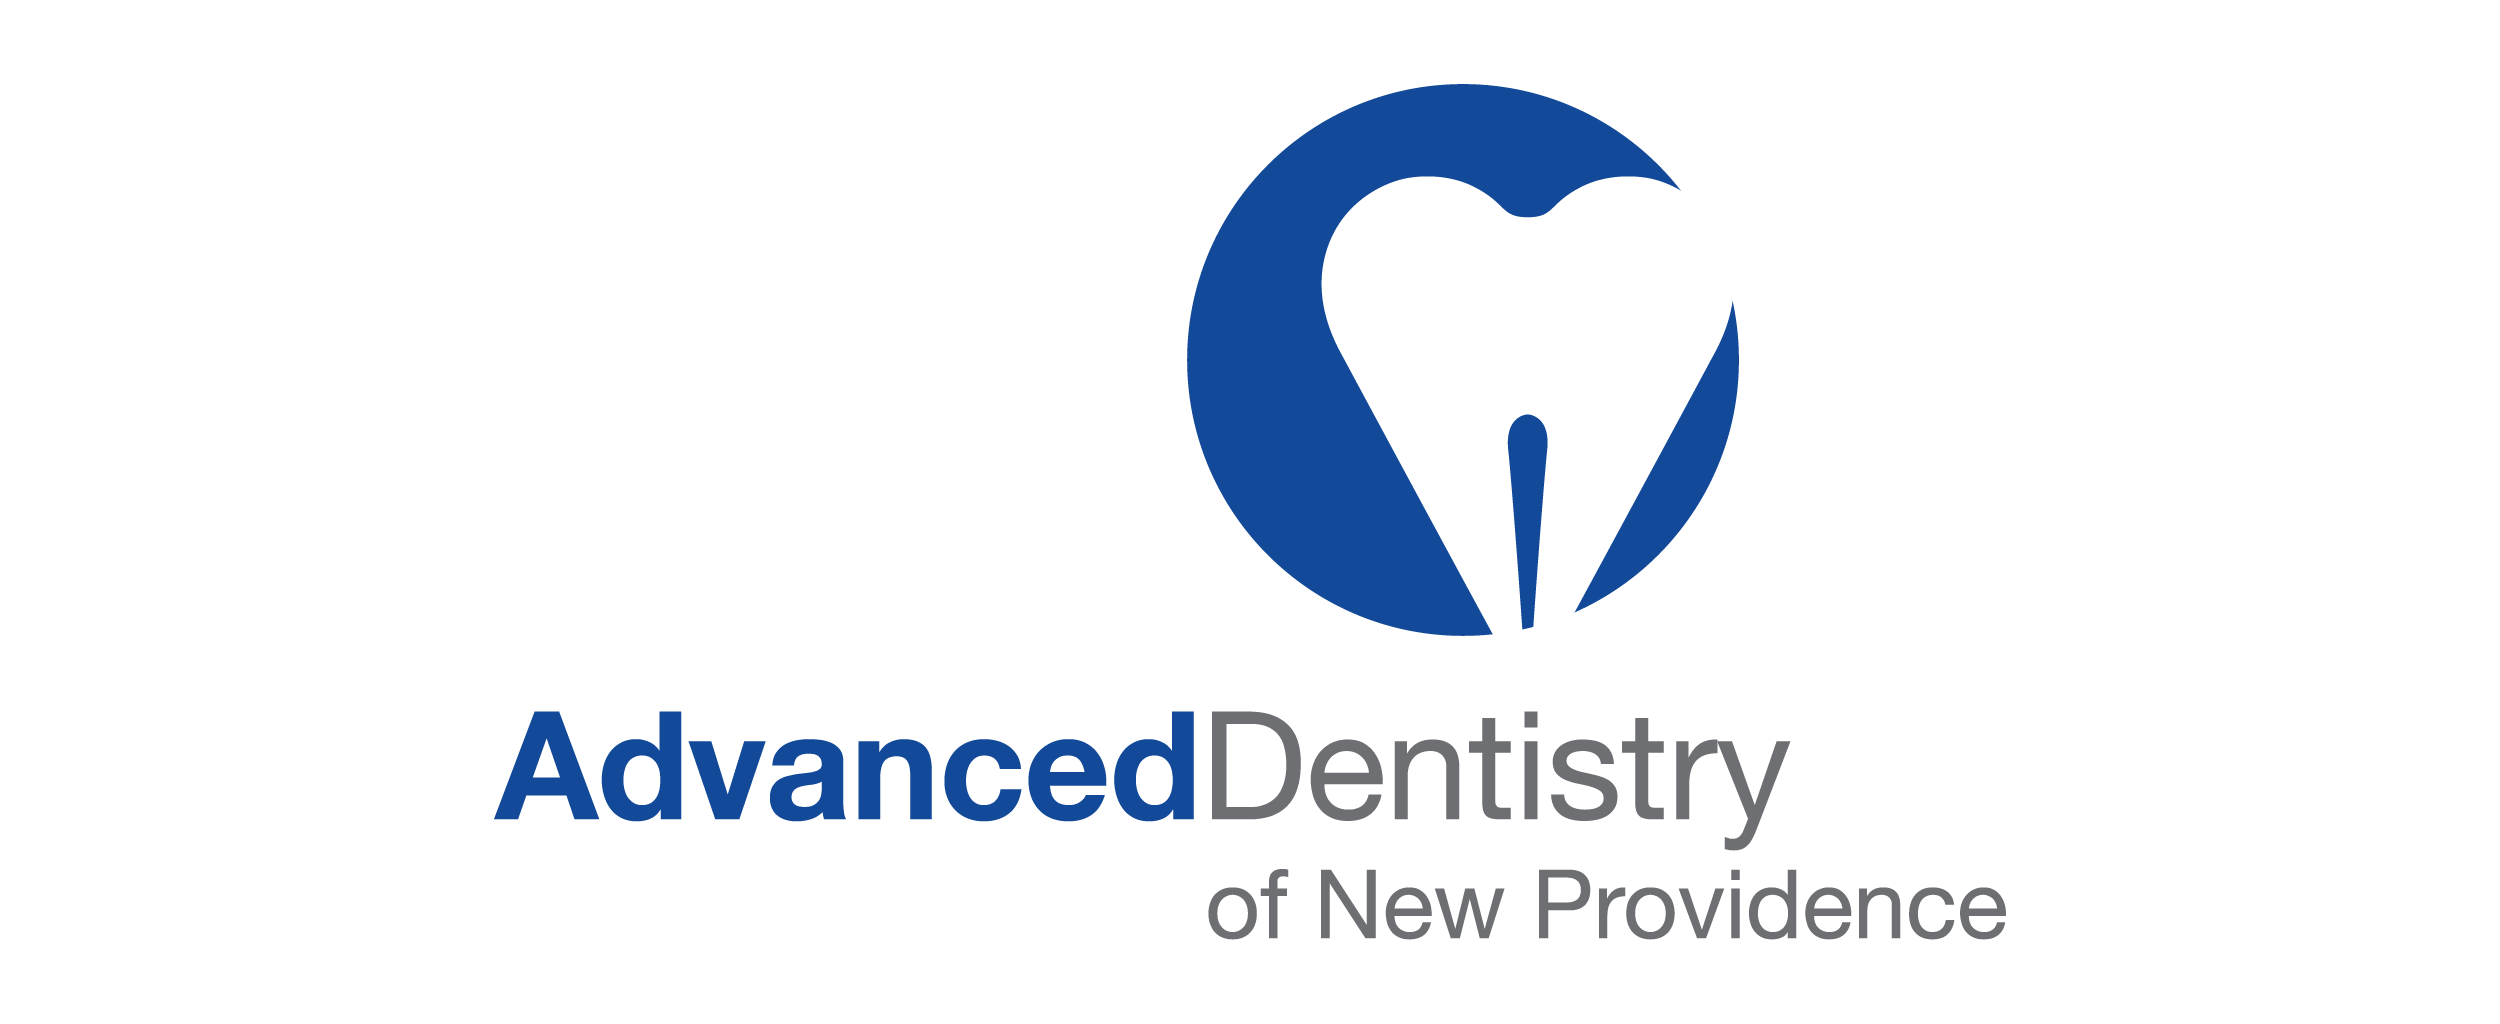 Advanced Dentistry of New Providence Prosthodontics  logo designed for client of Stafford Communications